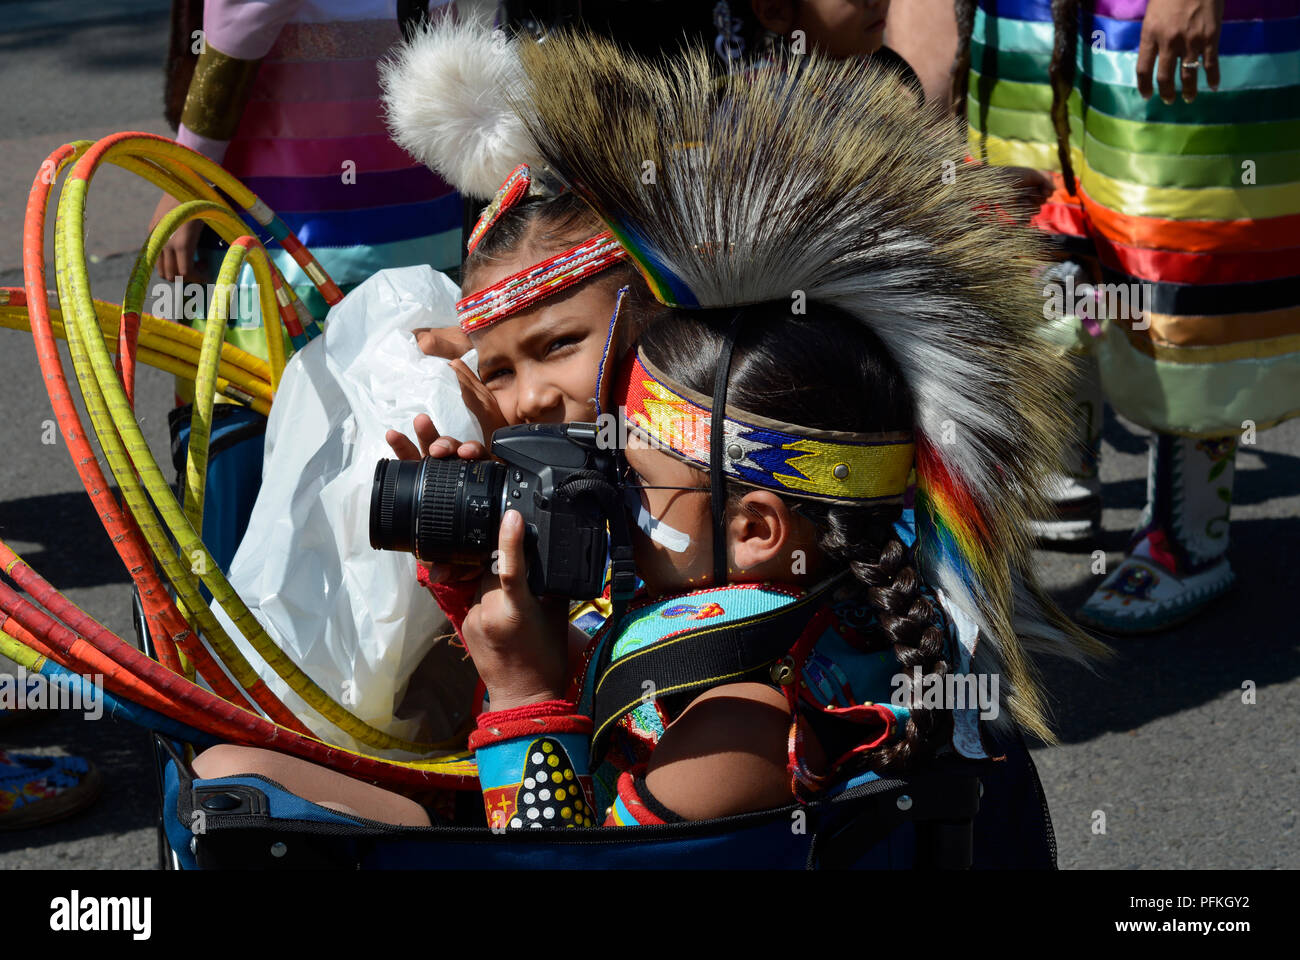 A young Native-American boy wearing traditionall Plains Indian regalia takes a picture with his Nikon camera. - Stock Image